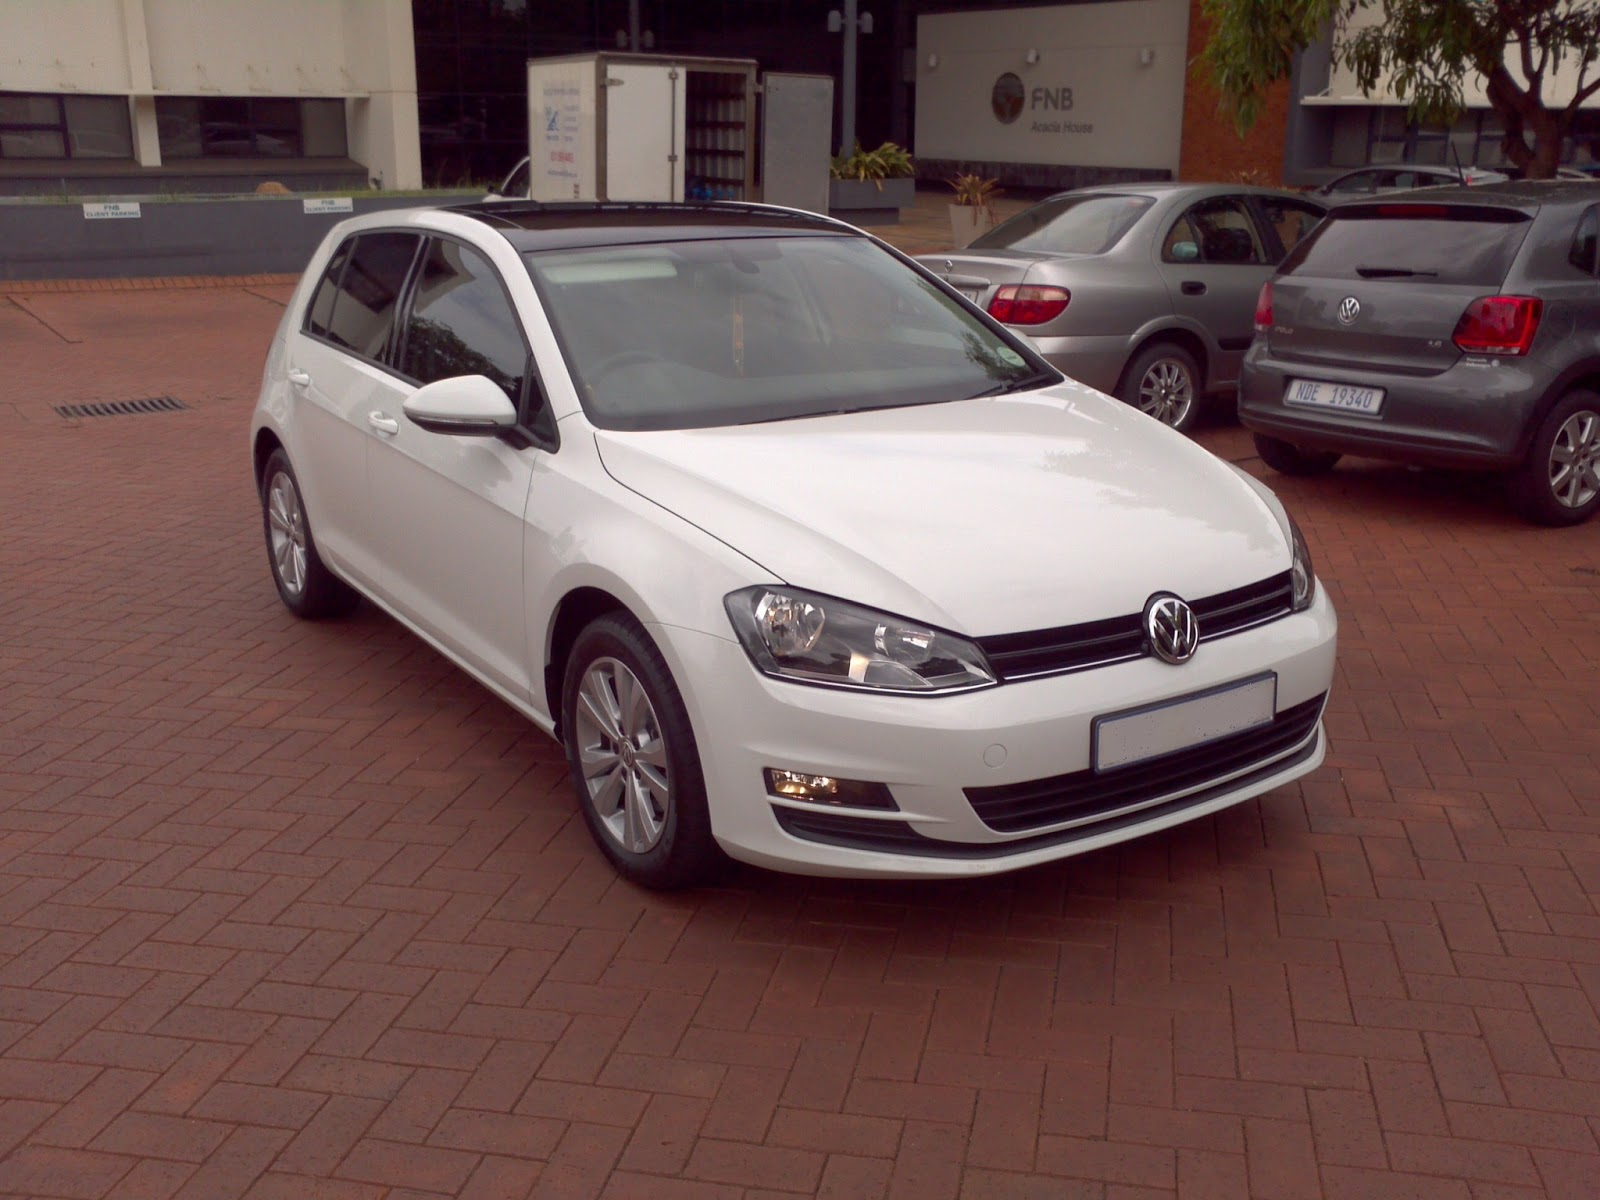 2013 vw golf 7 1 4 tsi comfortline dsg driveza. Black Bedroom Furniture Sets. Home Design Ideas